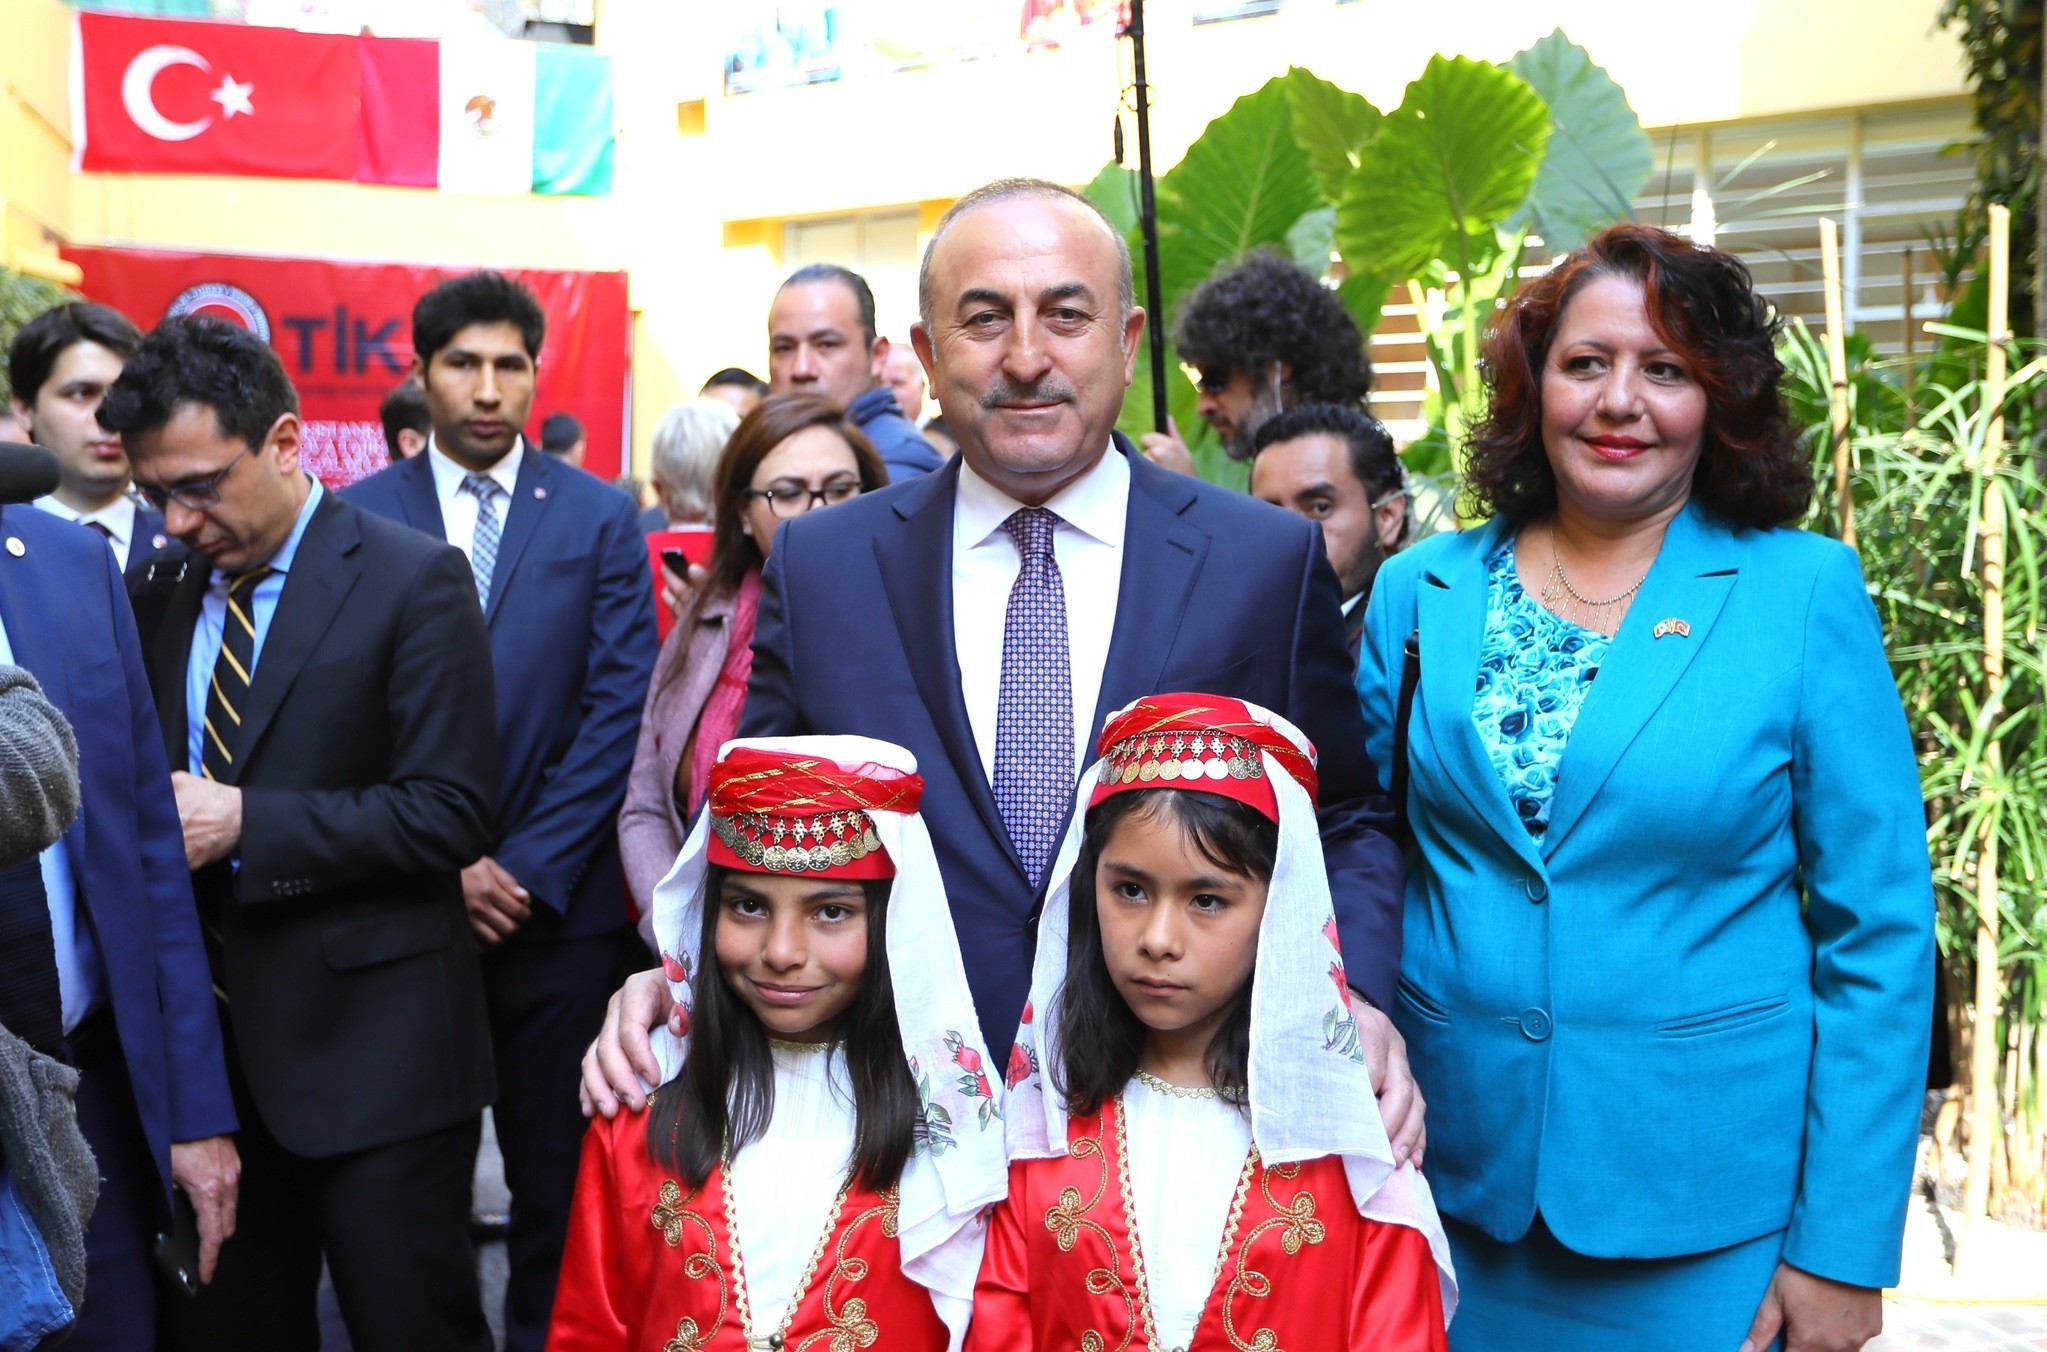 Foreign Minister Mevlu00fct u00c7avuu015fou011flu poses with two Mexican girls wearing traditional Turkish costume during the opening ceremony of TIKAu2019s Mexico office on February 3, 2017. (AA Photo)